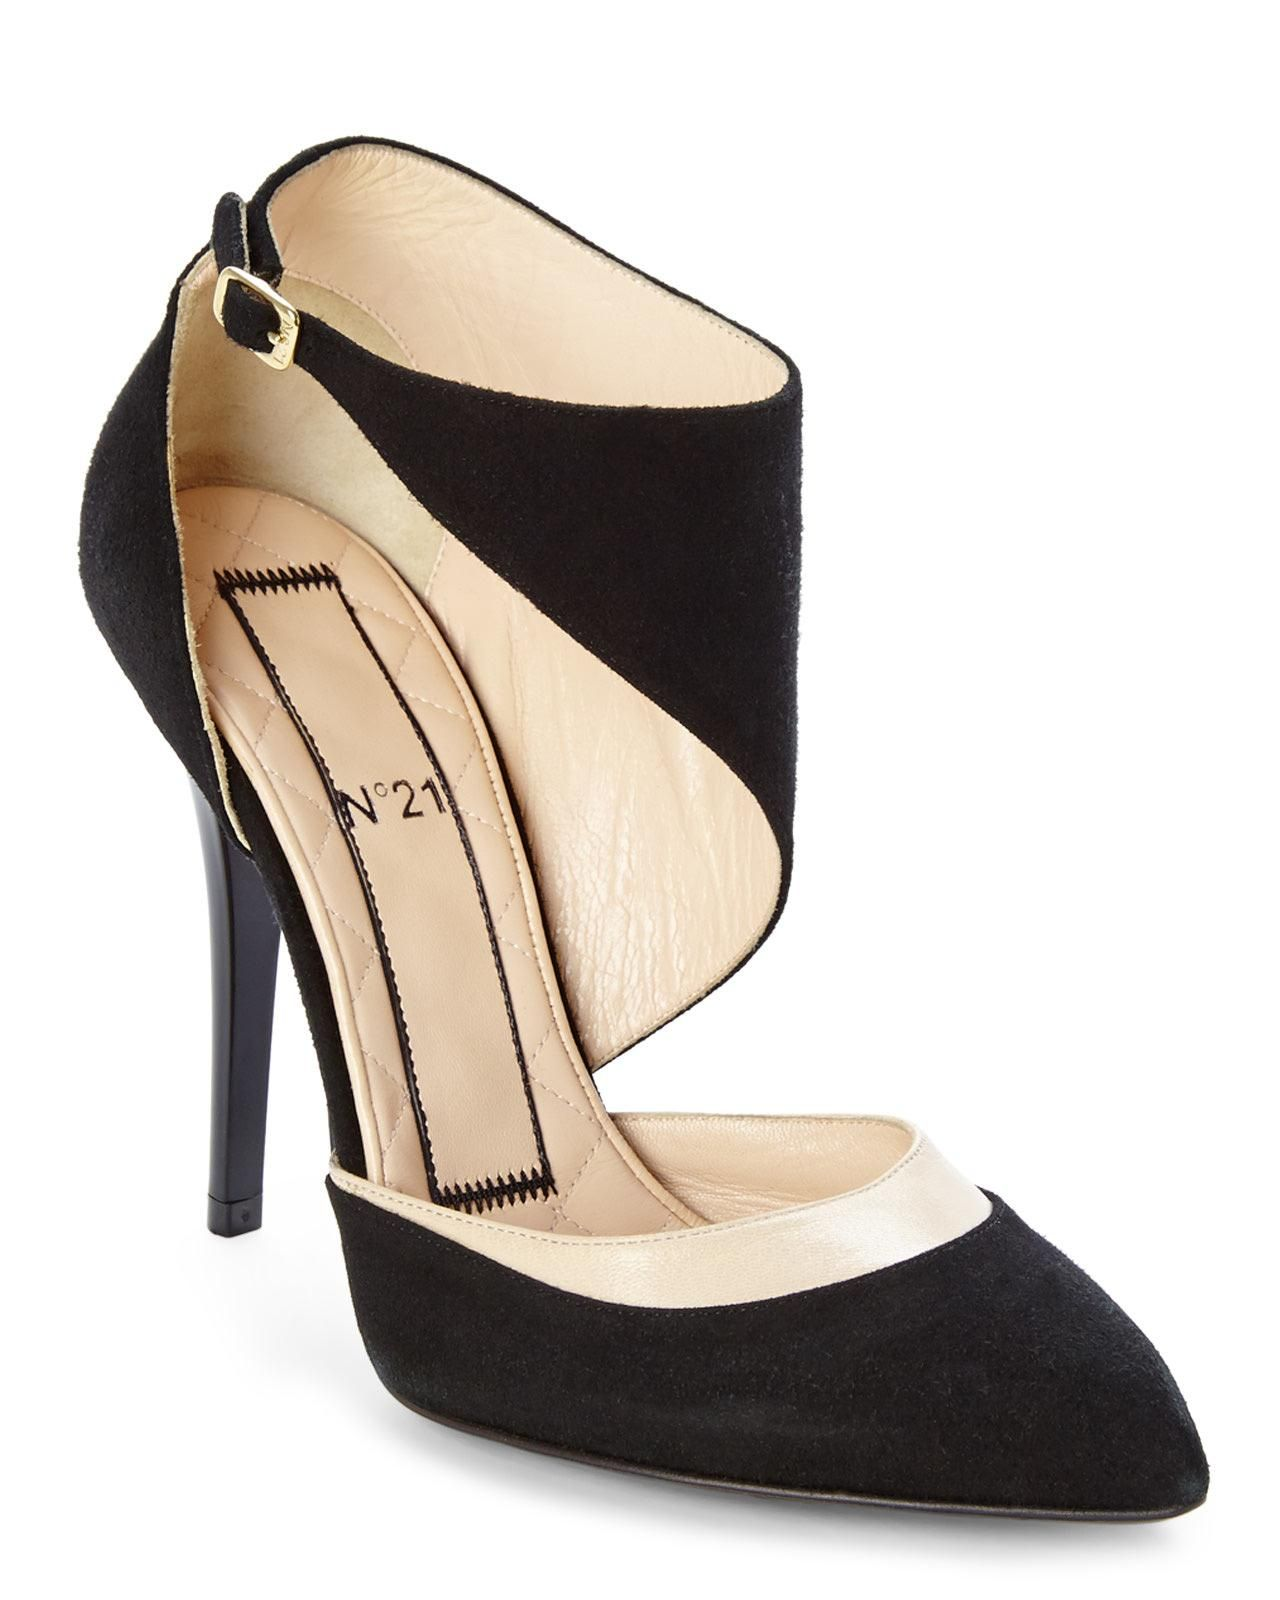 Style inspired by the boys but with a feminine touch and Italian sensibility. #Heels #WishList